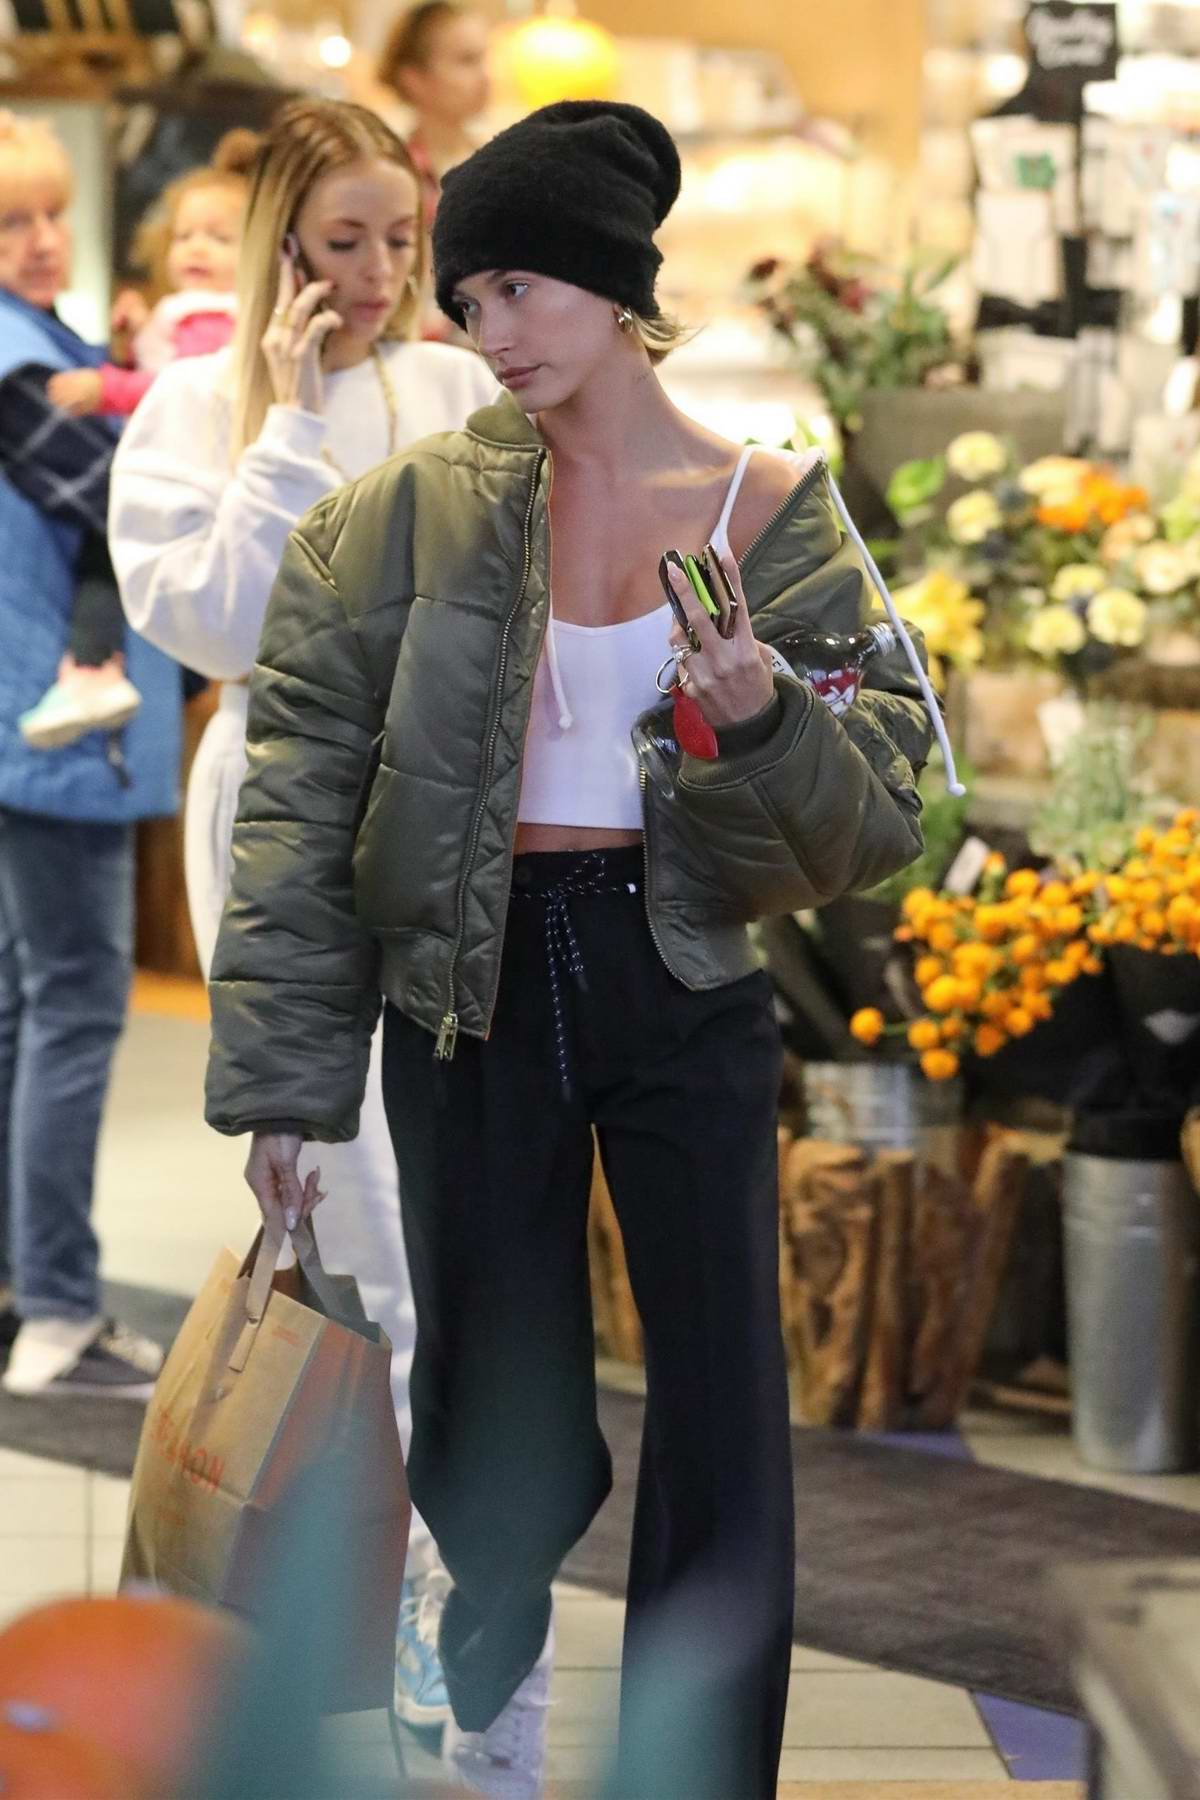 Hailey Bieber stops by to pick some groceries at Erewhon market in Los Angeles